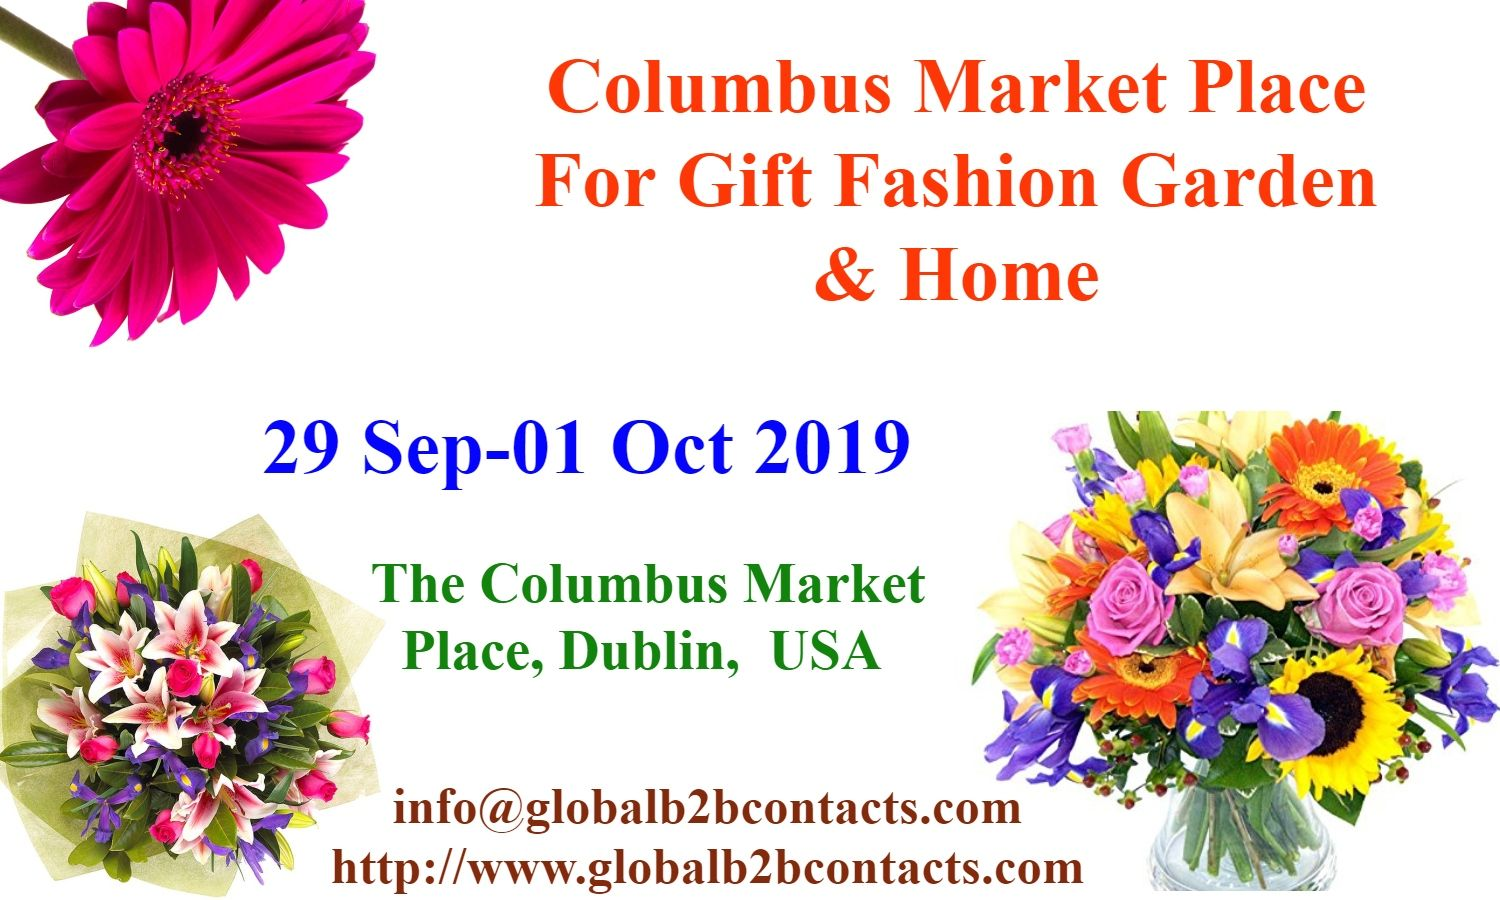 Columbus Market Place For Gift Fashion Garden & Home is a